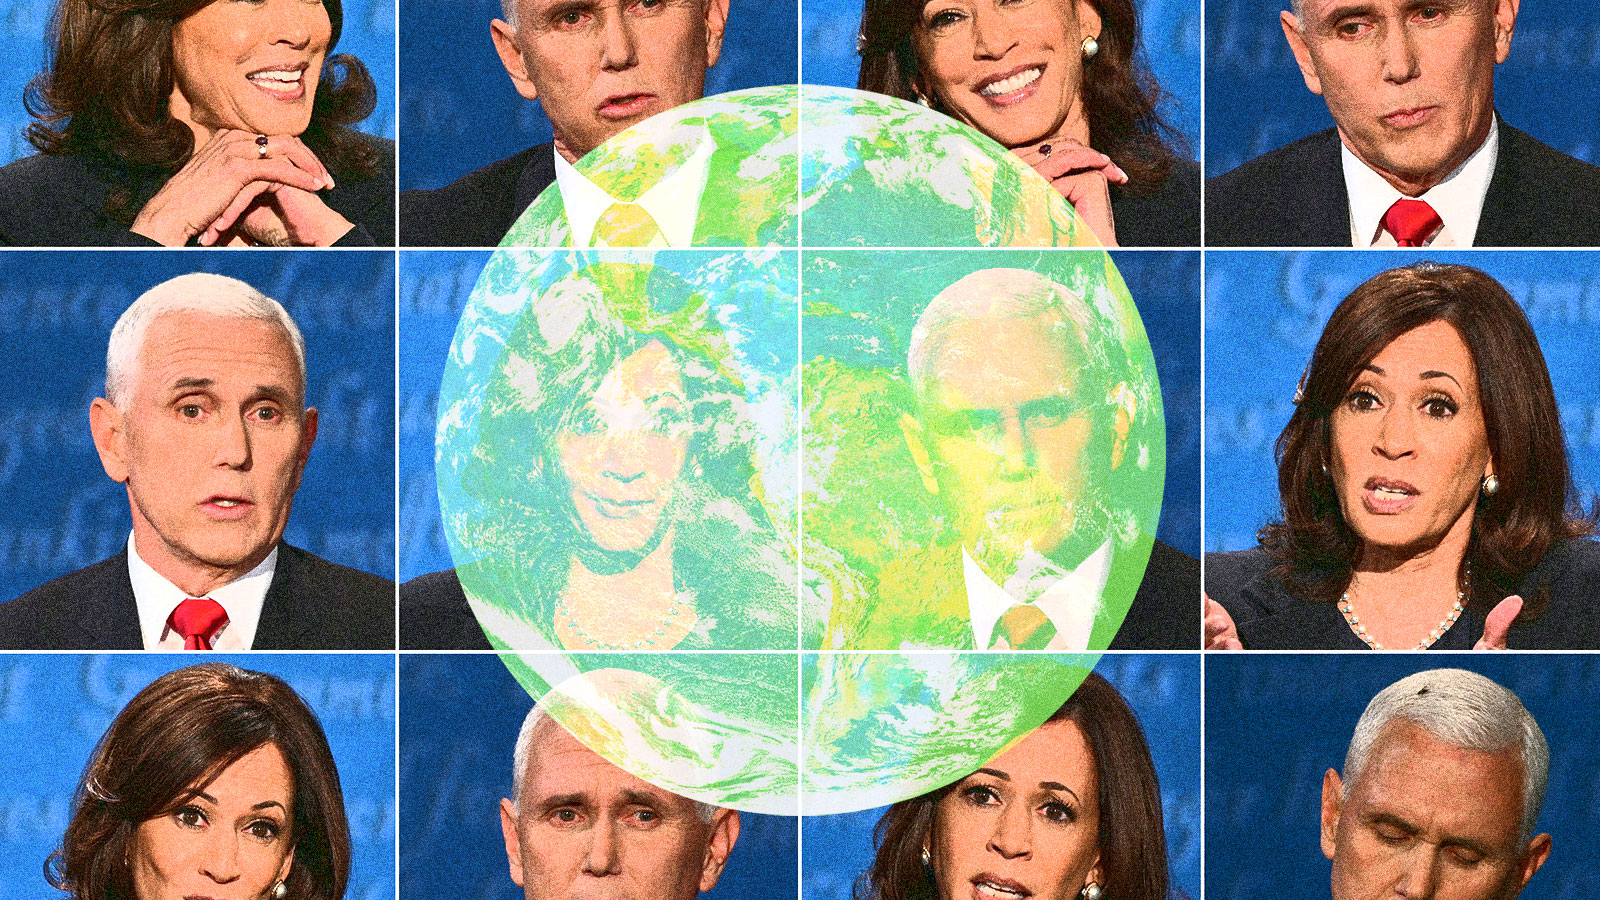 A compilation of Kamala Harris and Mike Pence's expressions from the Vice Presidential debate with an earth in the middle of the image